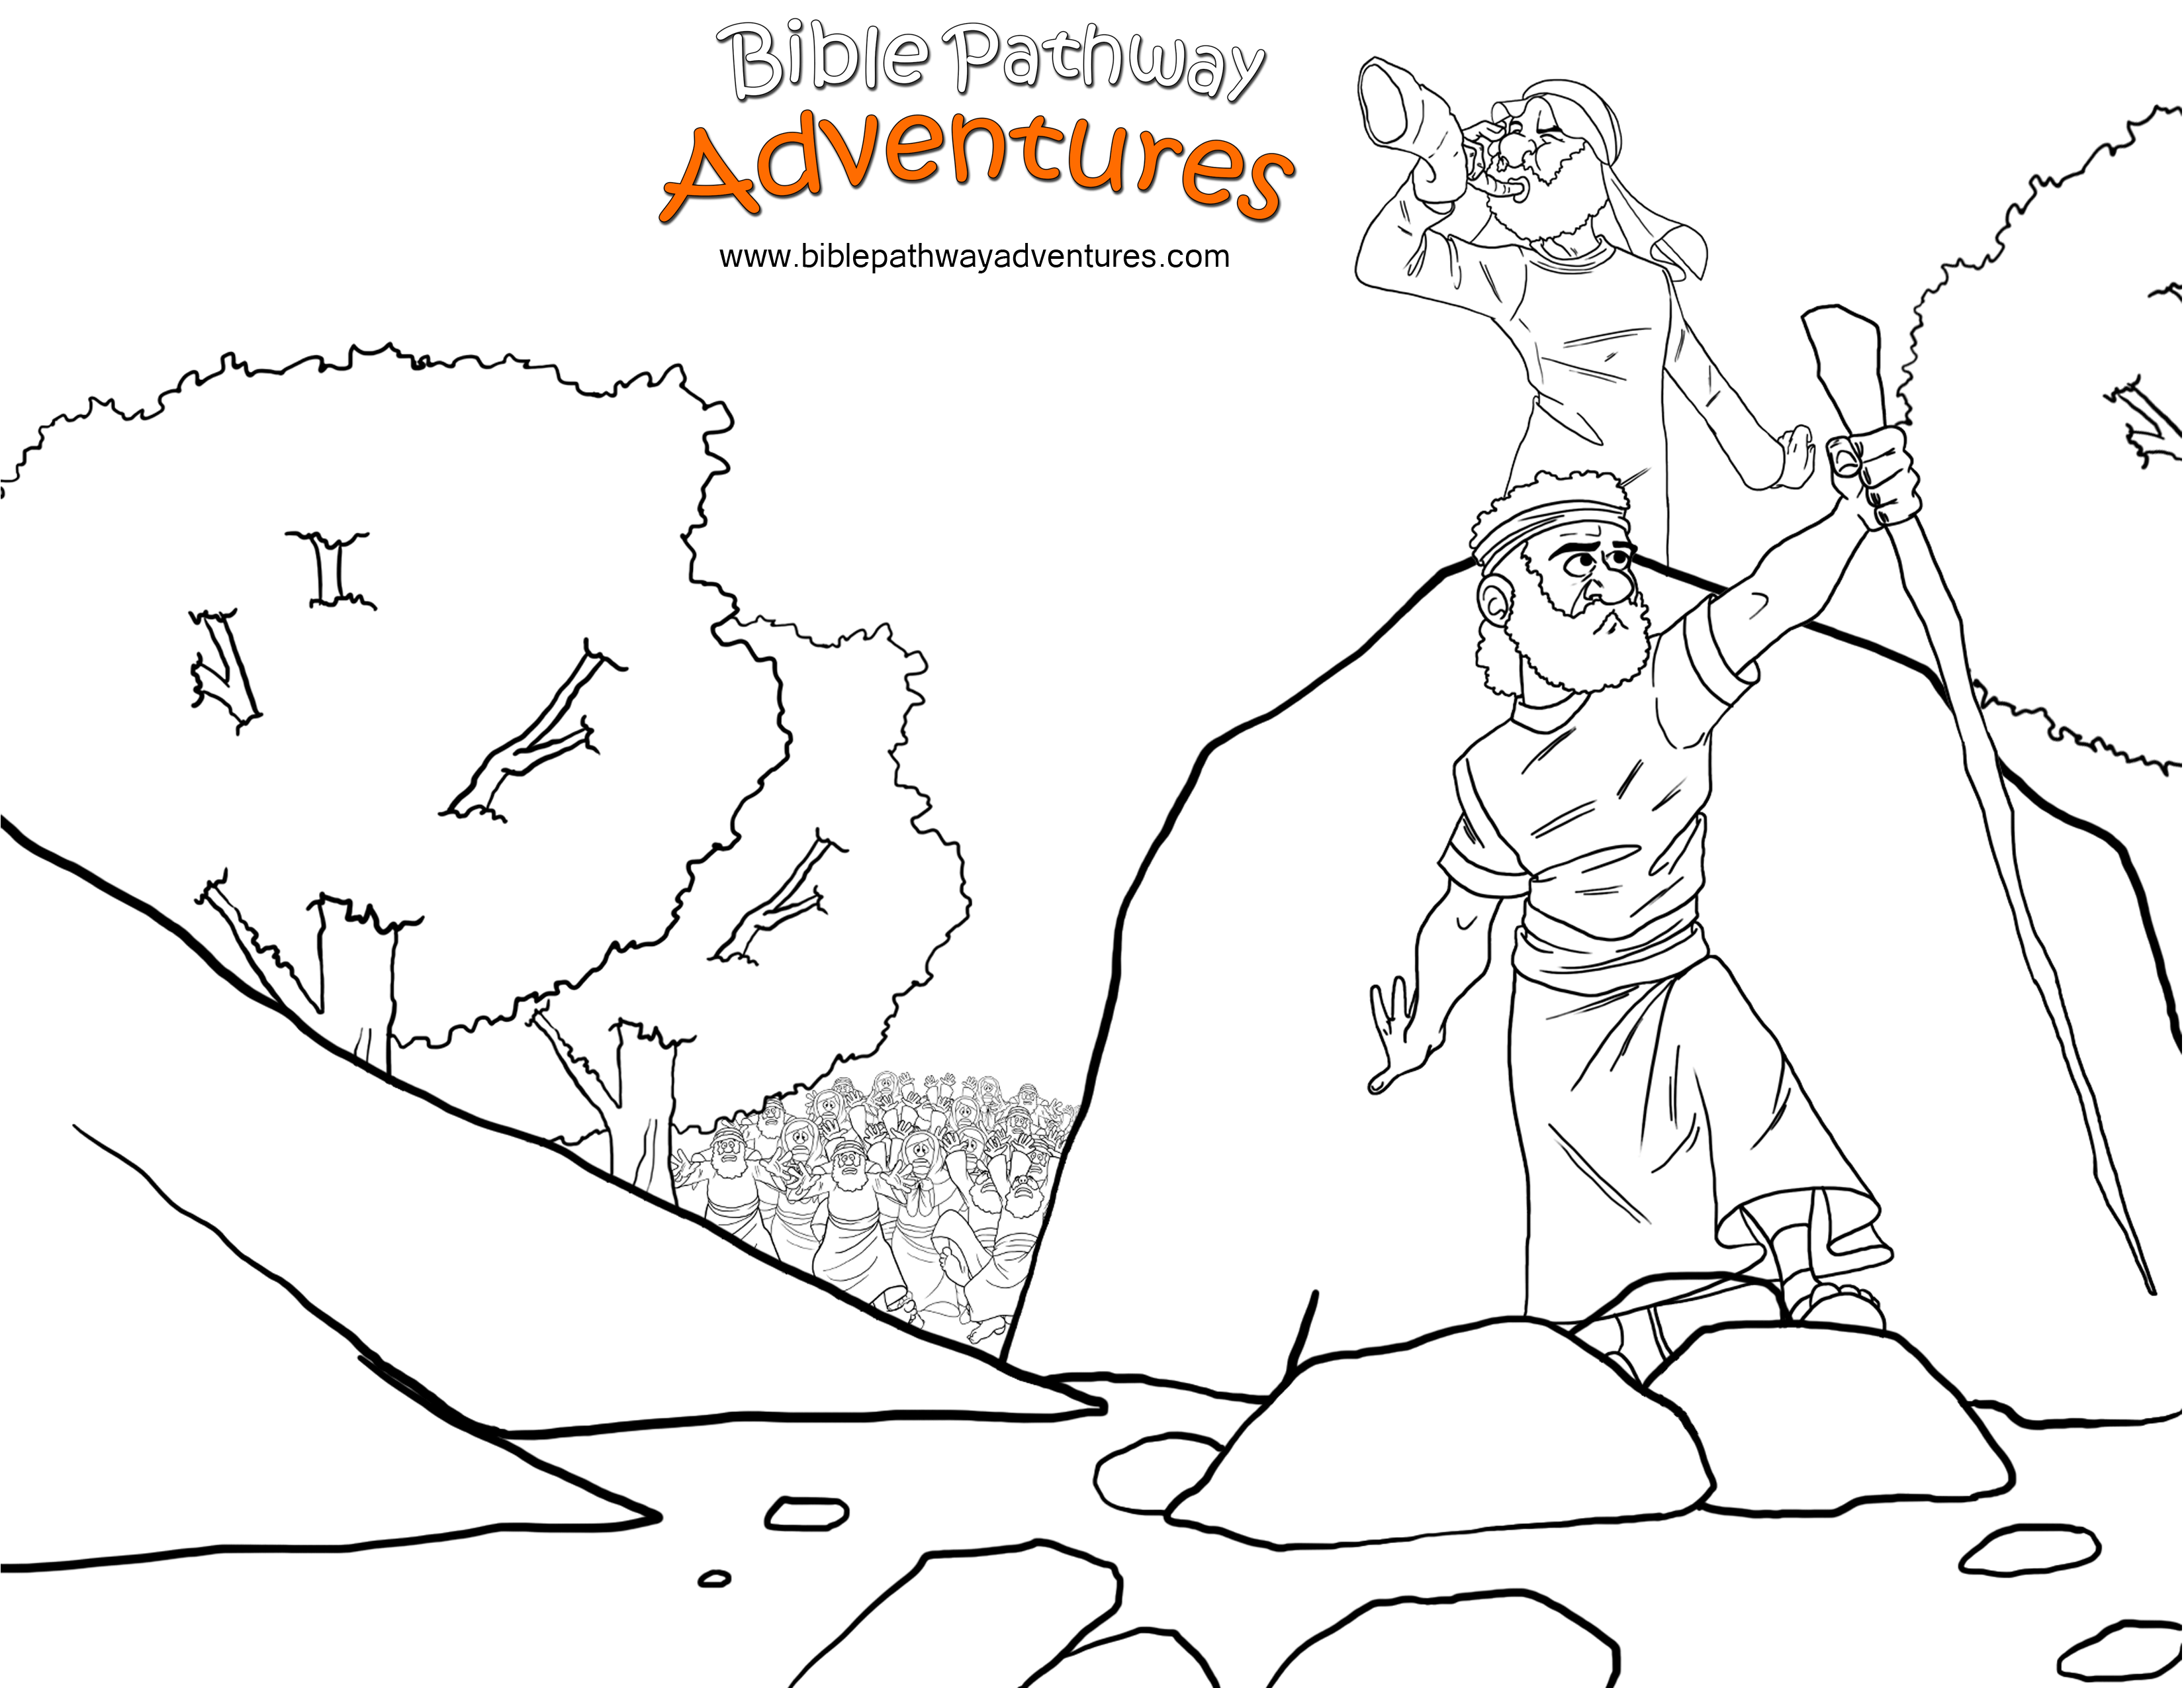 israelites and the promised land coloring pages | Free Bible Coloring Page - To the Promised Land | Sunday ...